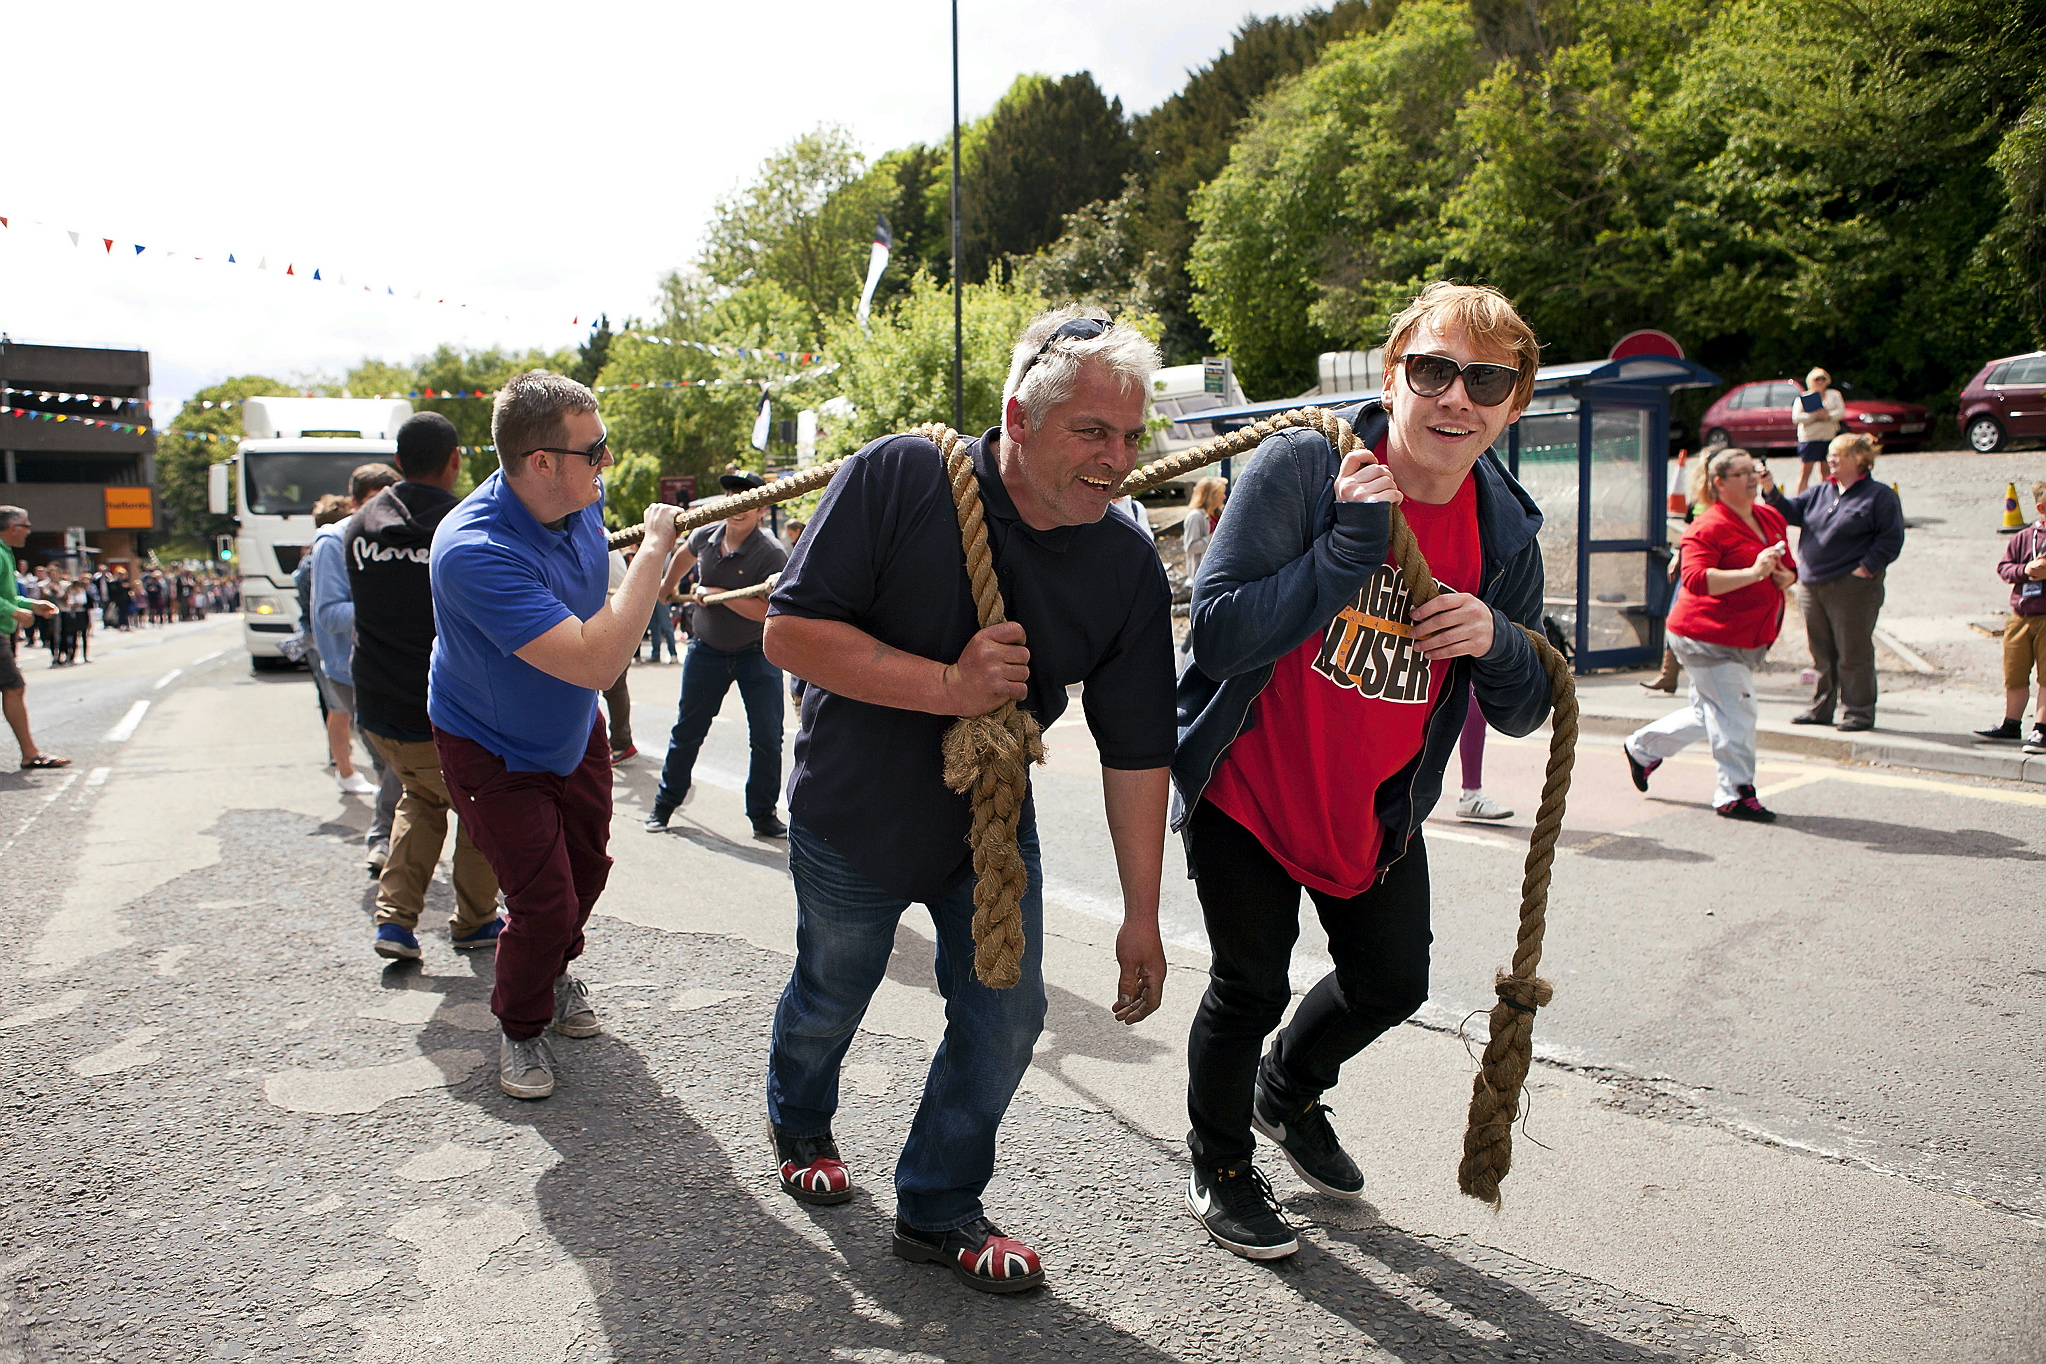 Gary Gardner (front, left) pictured with Harry Potter star Rupert Grint at the charity truck pull in Stroud in 2013. The fraud charges do not relate to events in Stroud